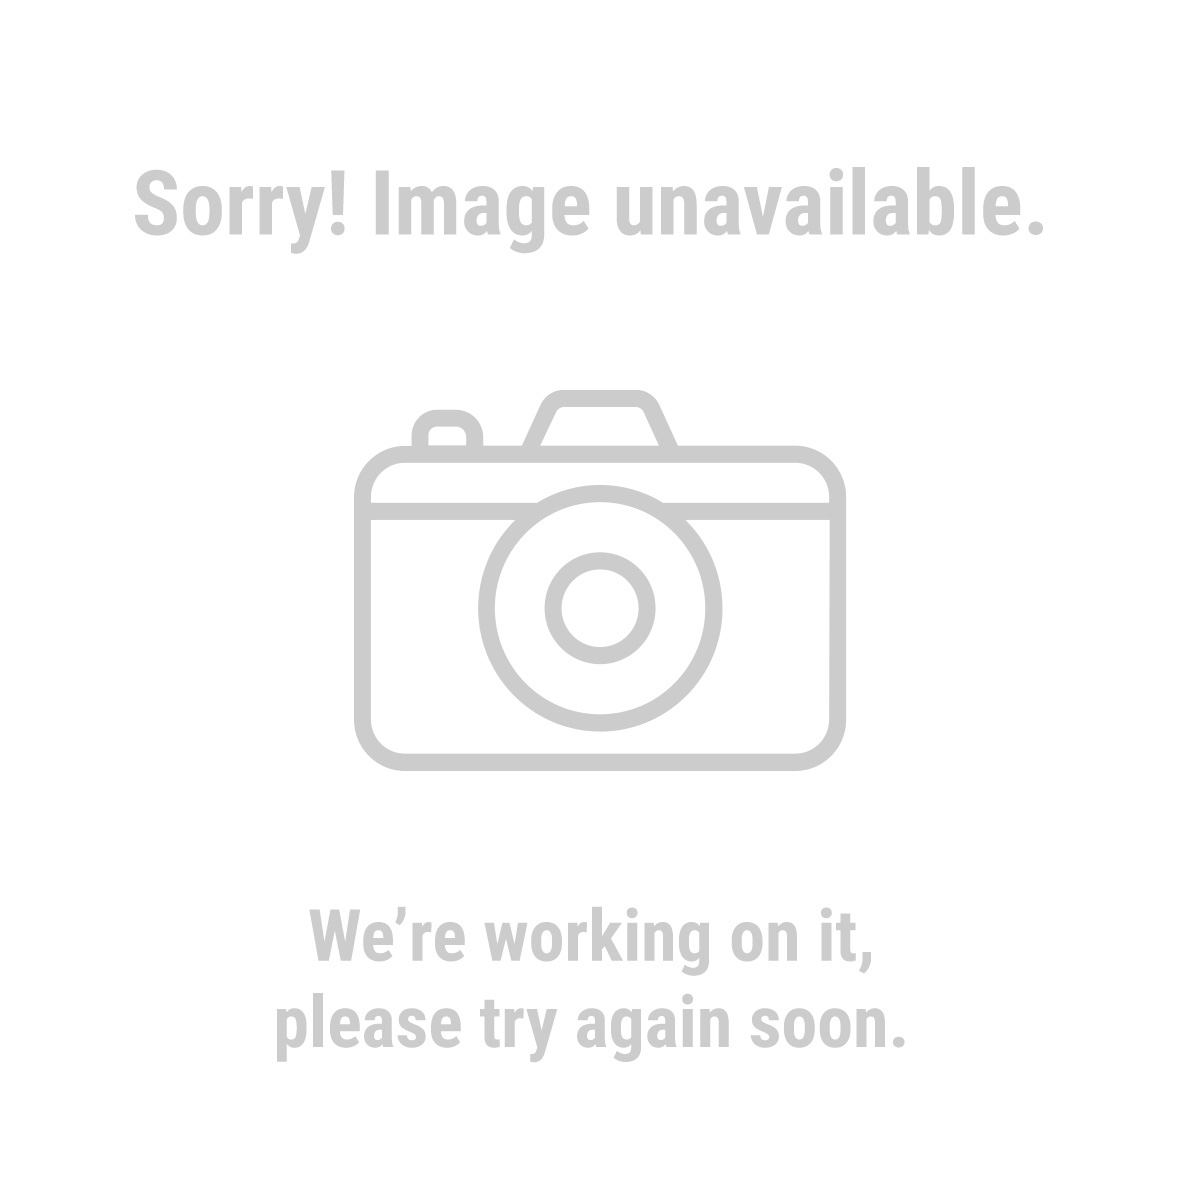 Gordon 32099 13 Piece Precision Knife Set